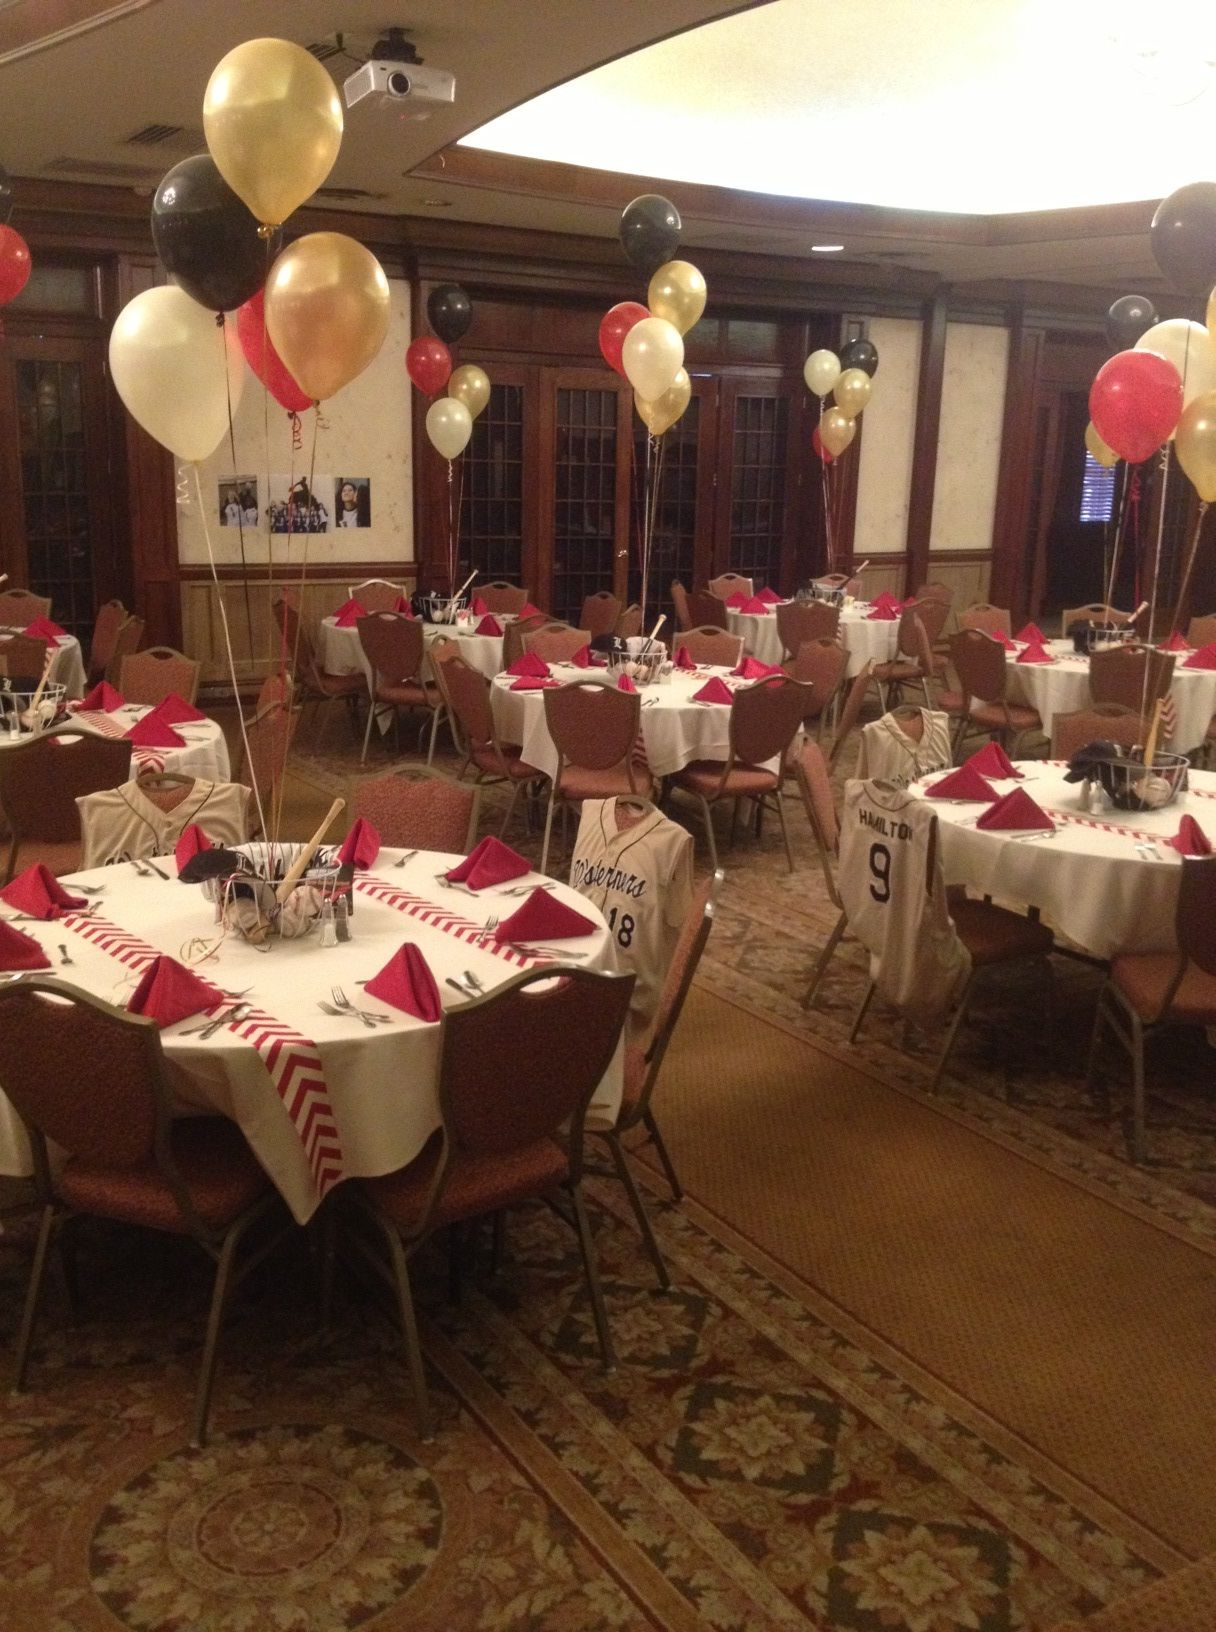 The balloons add height to the tables baseball pinterest